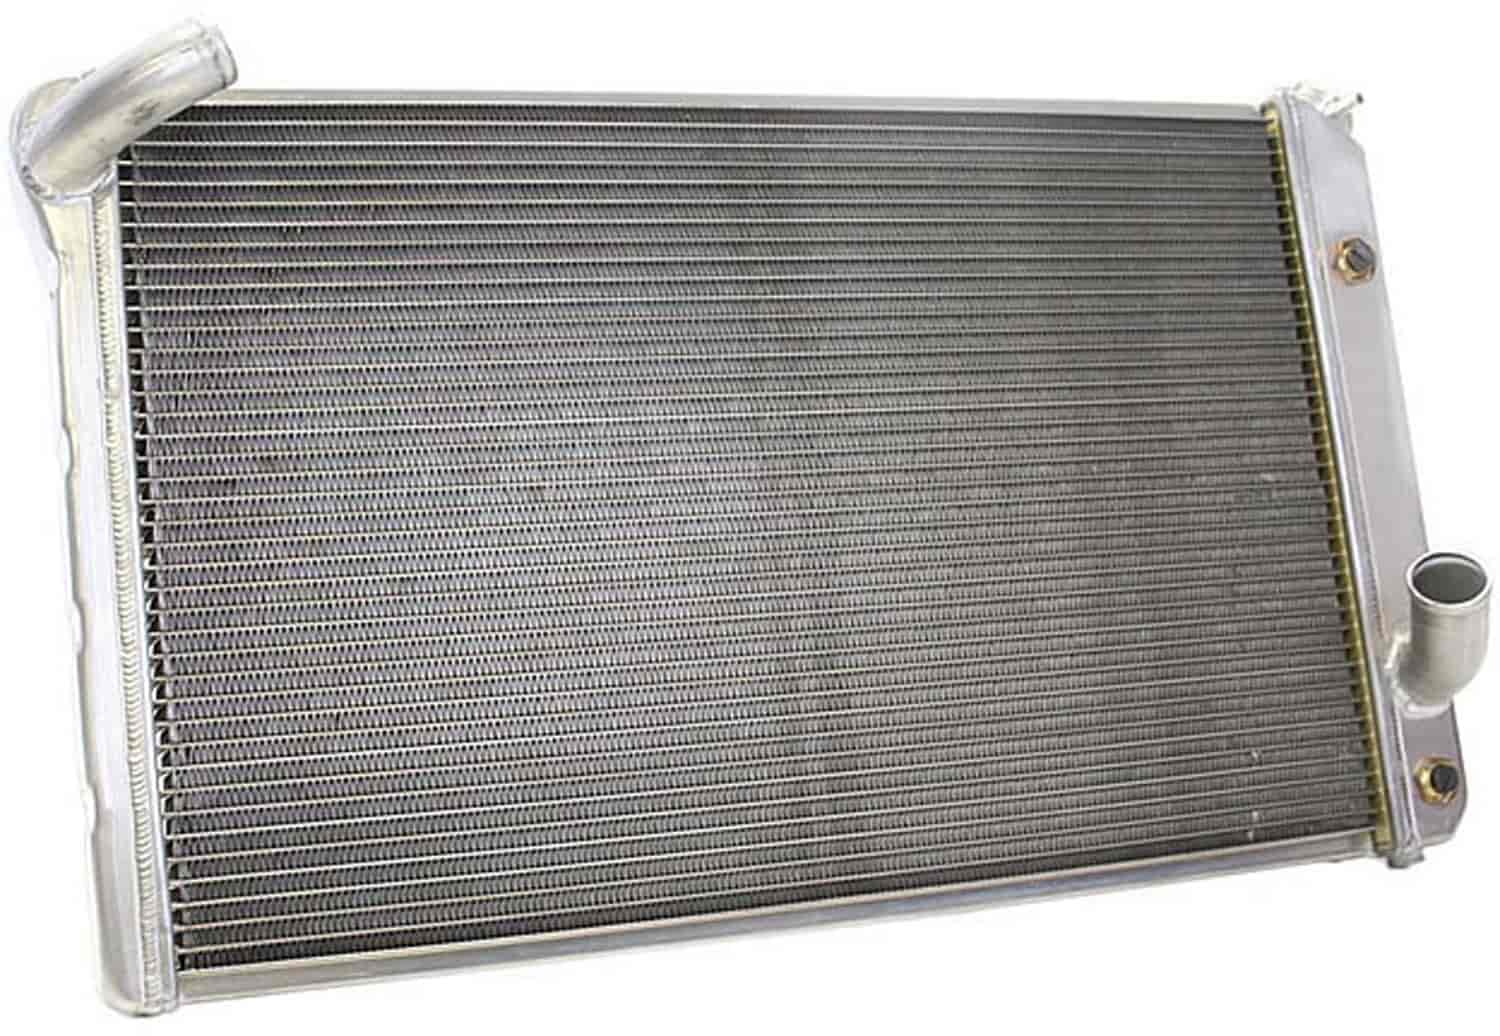 Griffin Radiators 6-70067